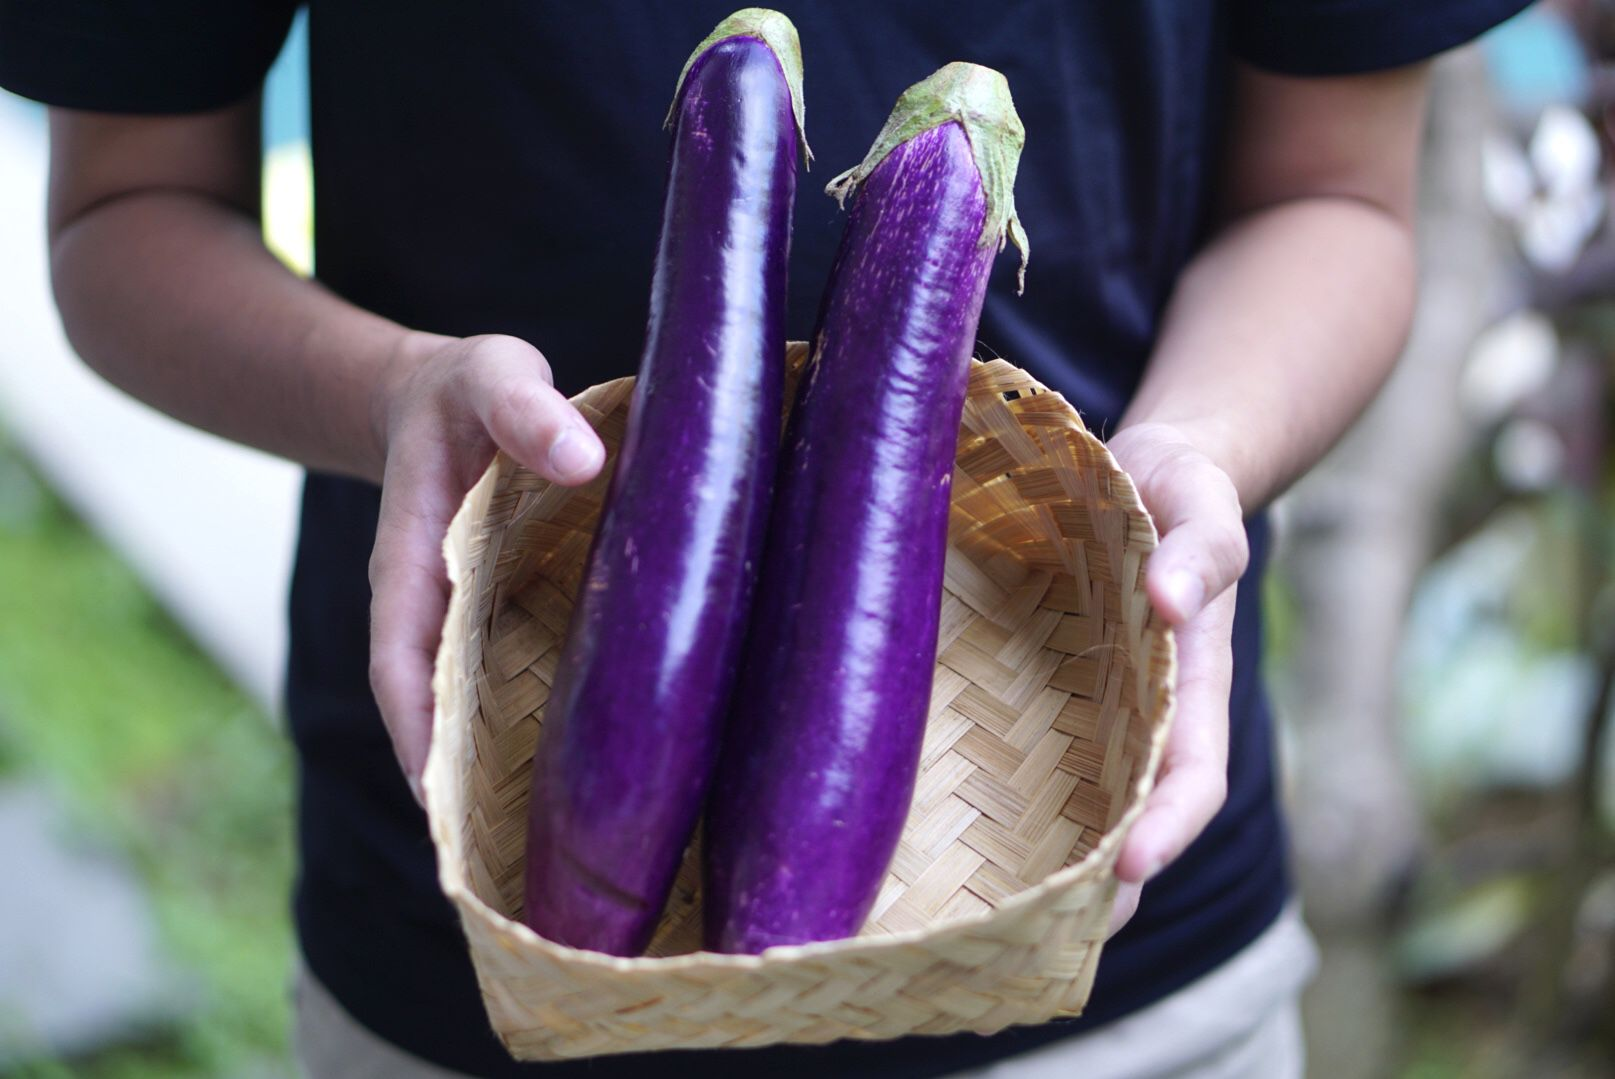 Two long purple eggplants carried in woven basket by hand